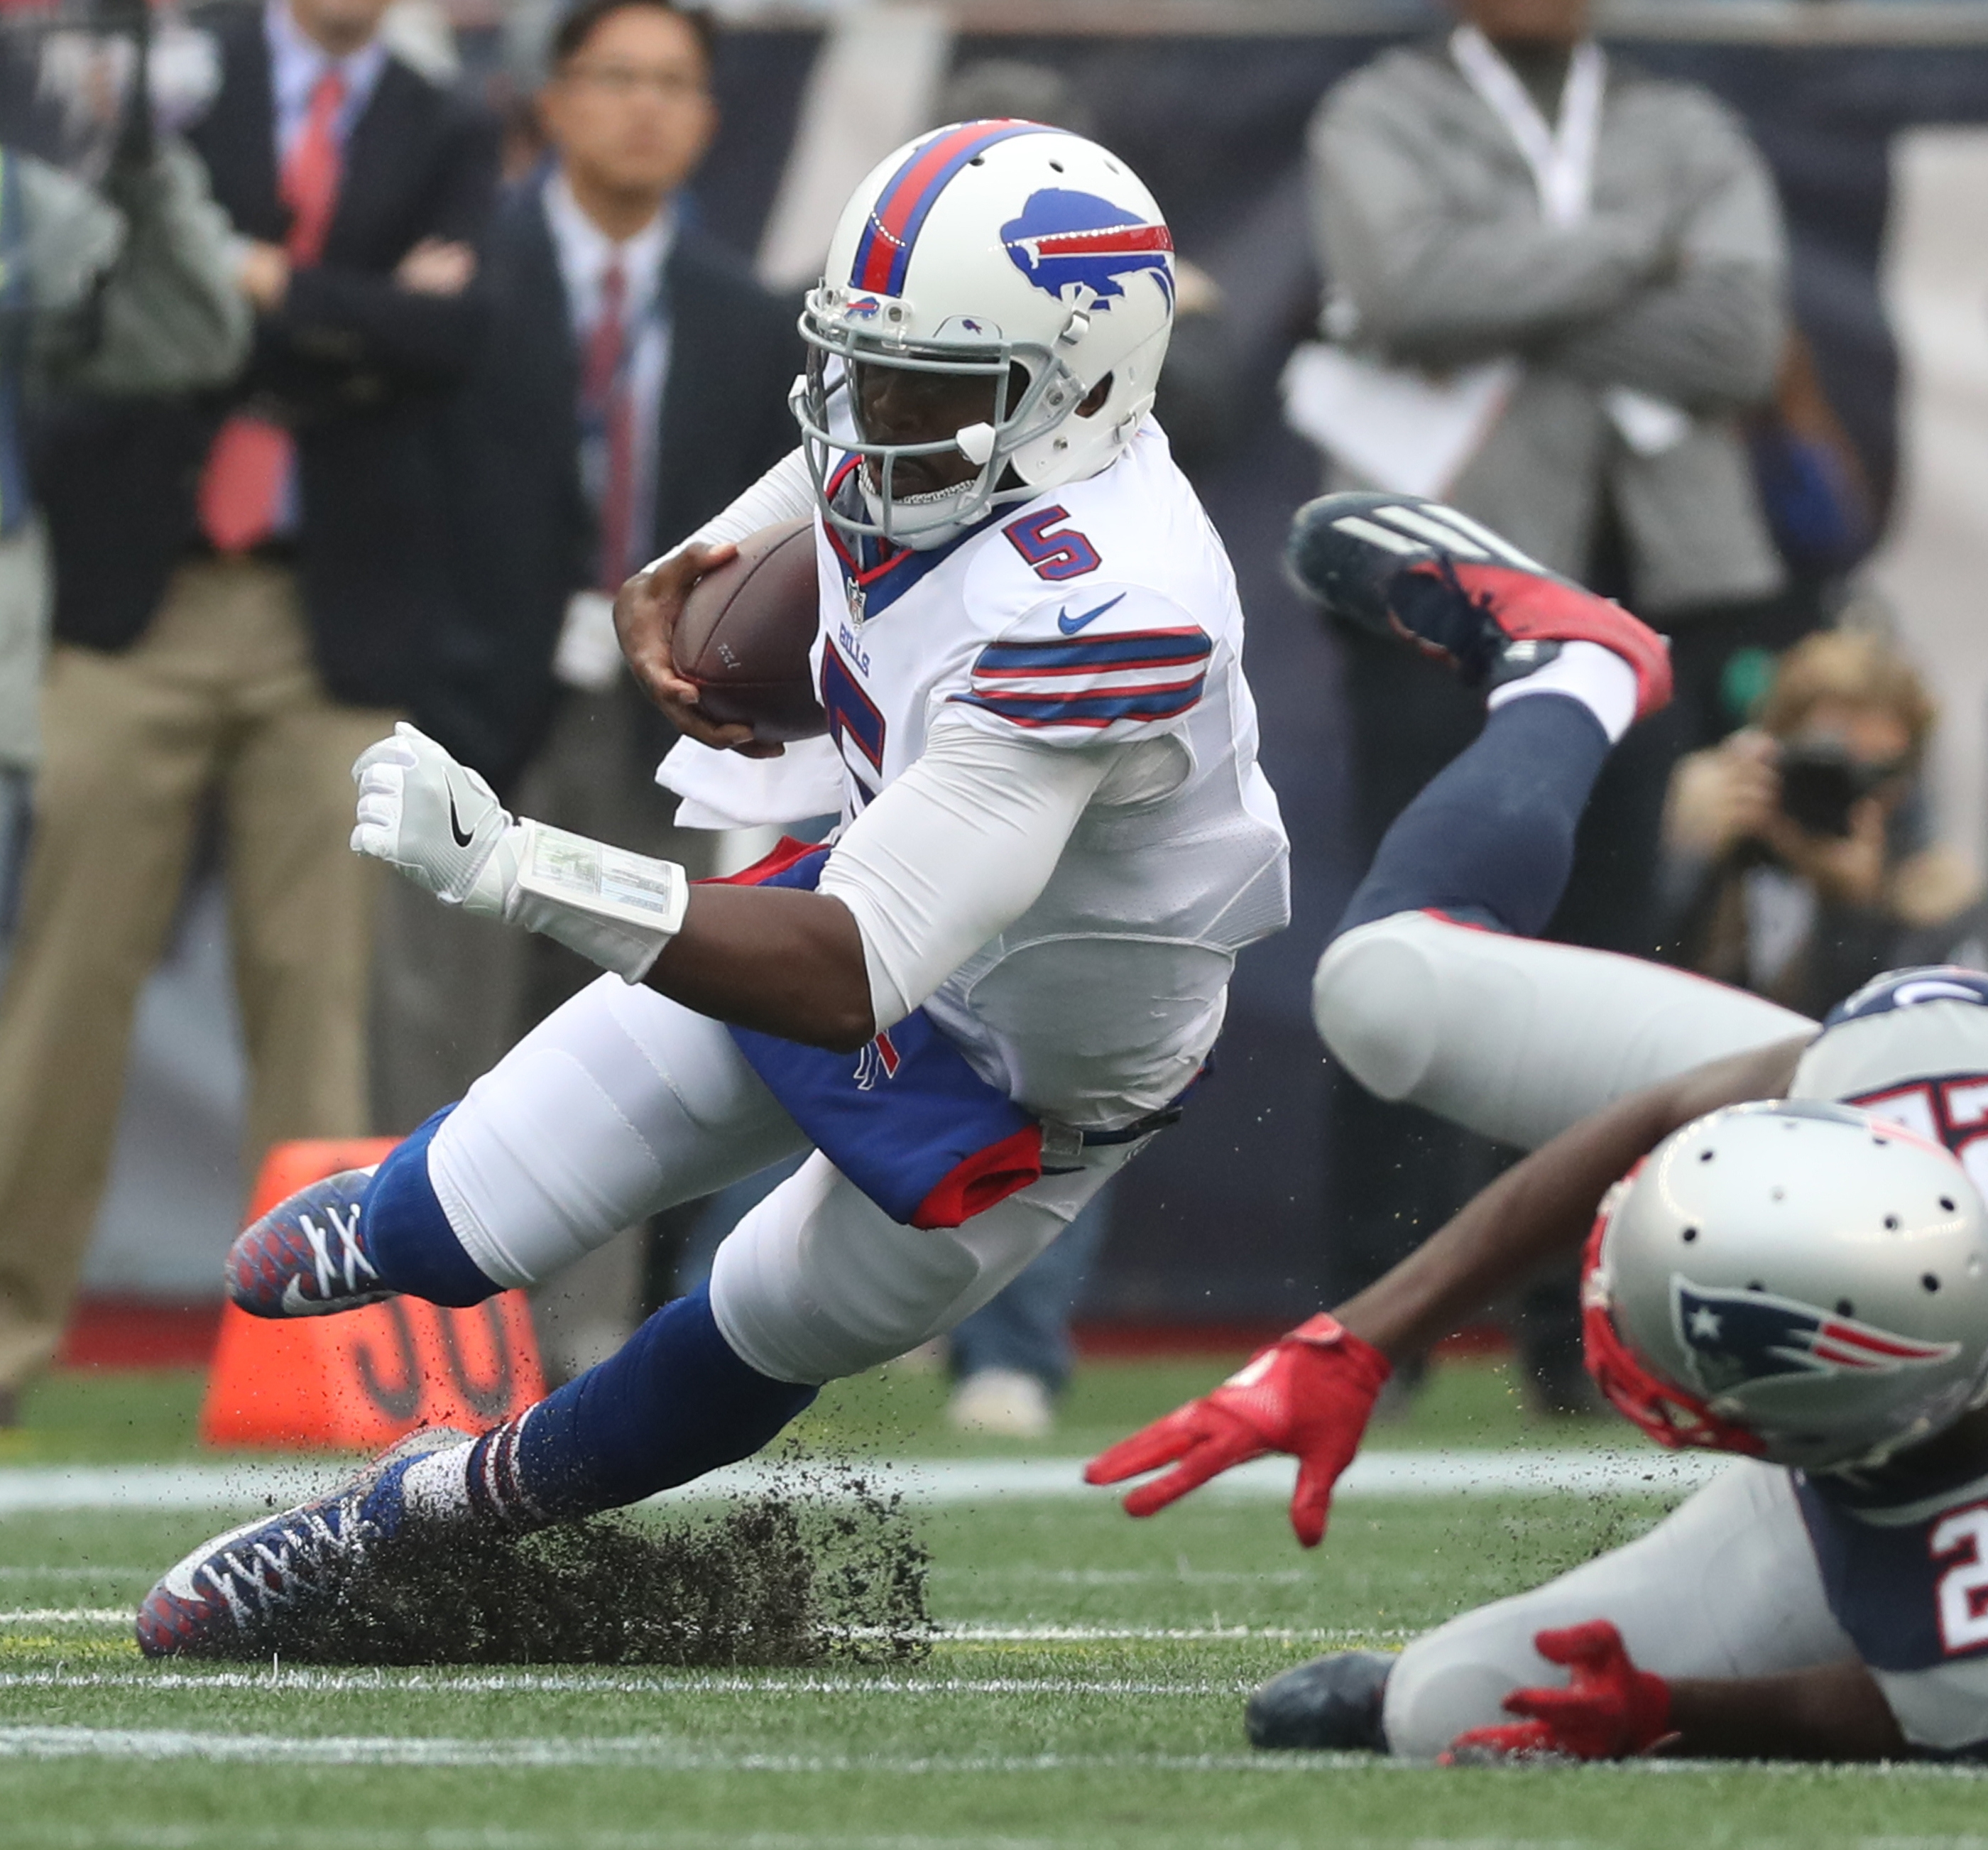 Buffalo Bills quarterback Tyrod Taylor (5) rushed for a first down against New England Patriots cornerback Justin Coleman (22) in the second quarter at Gillette Stadium in Foxborough, MA on Sunday, Oct. 2, 2016.  (James P. McCoy/ Buffalo News)